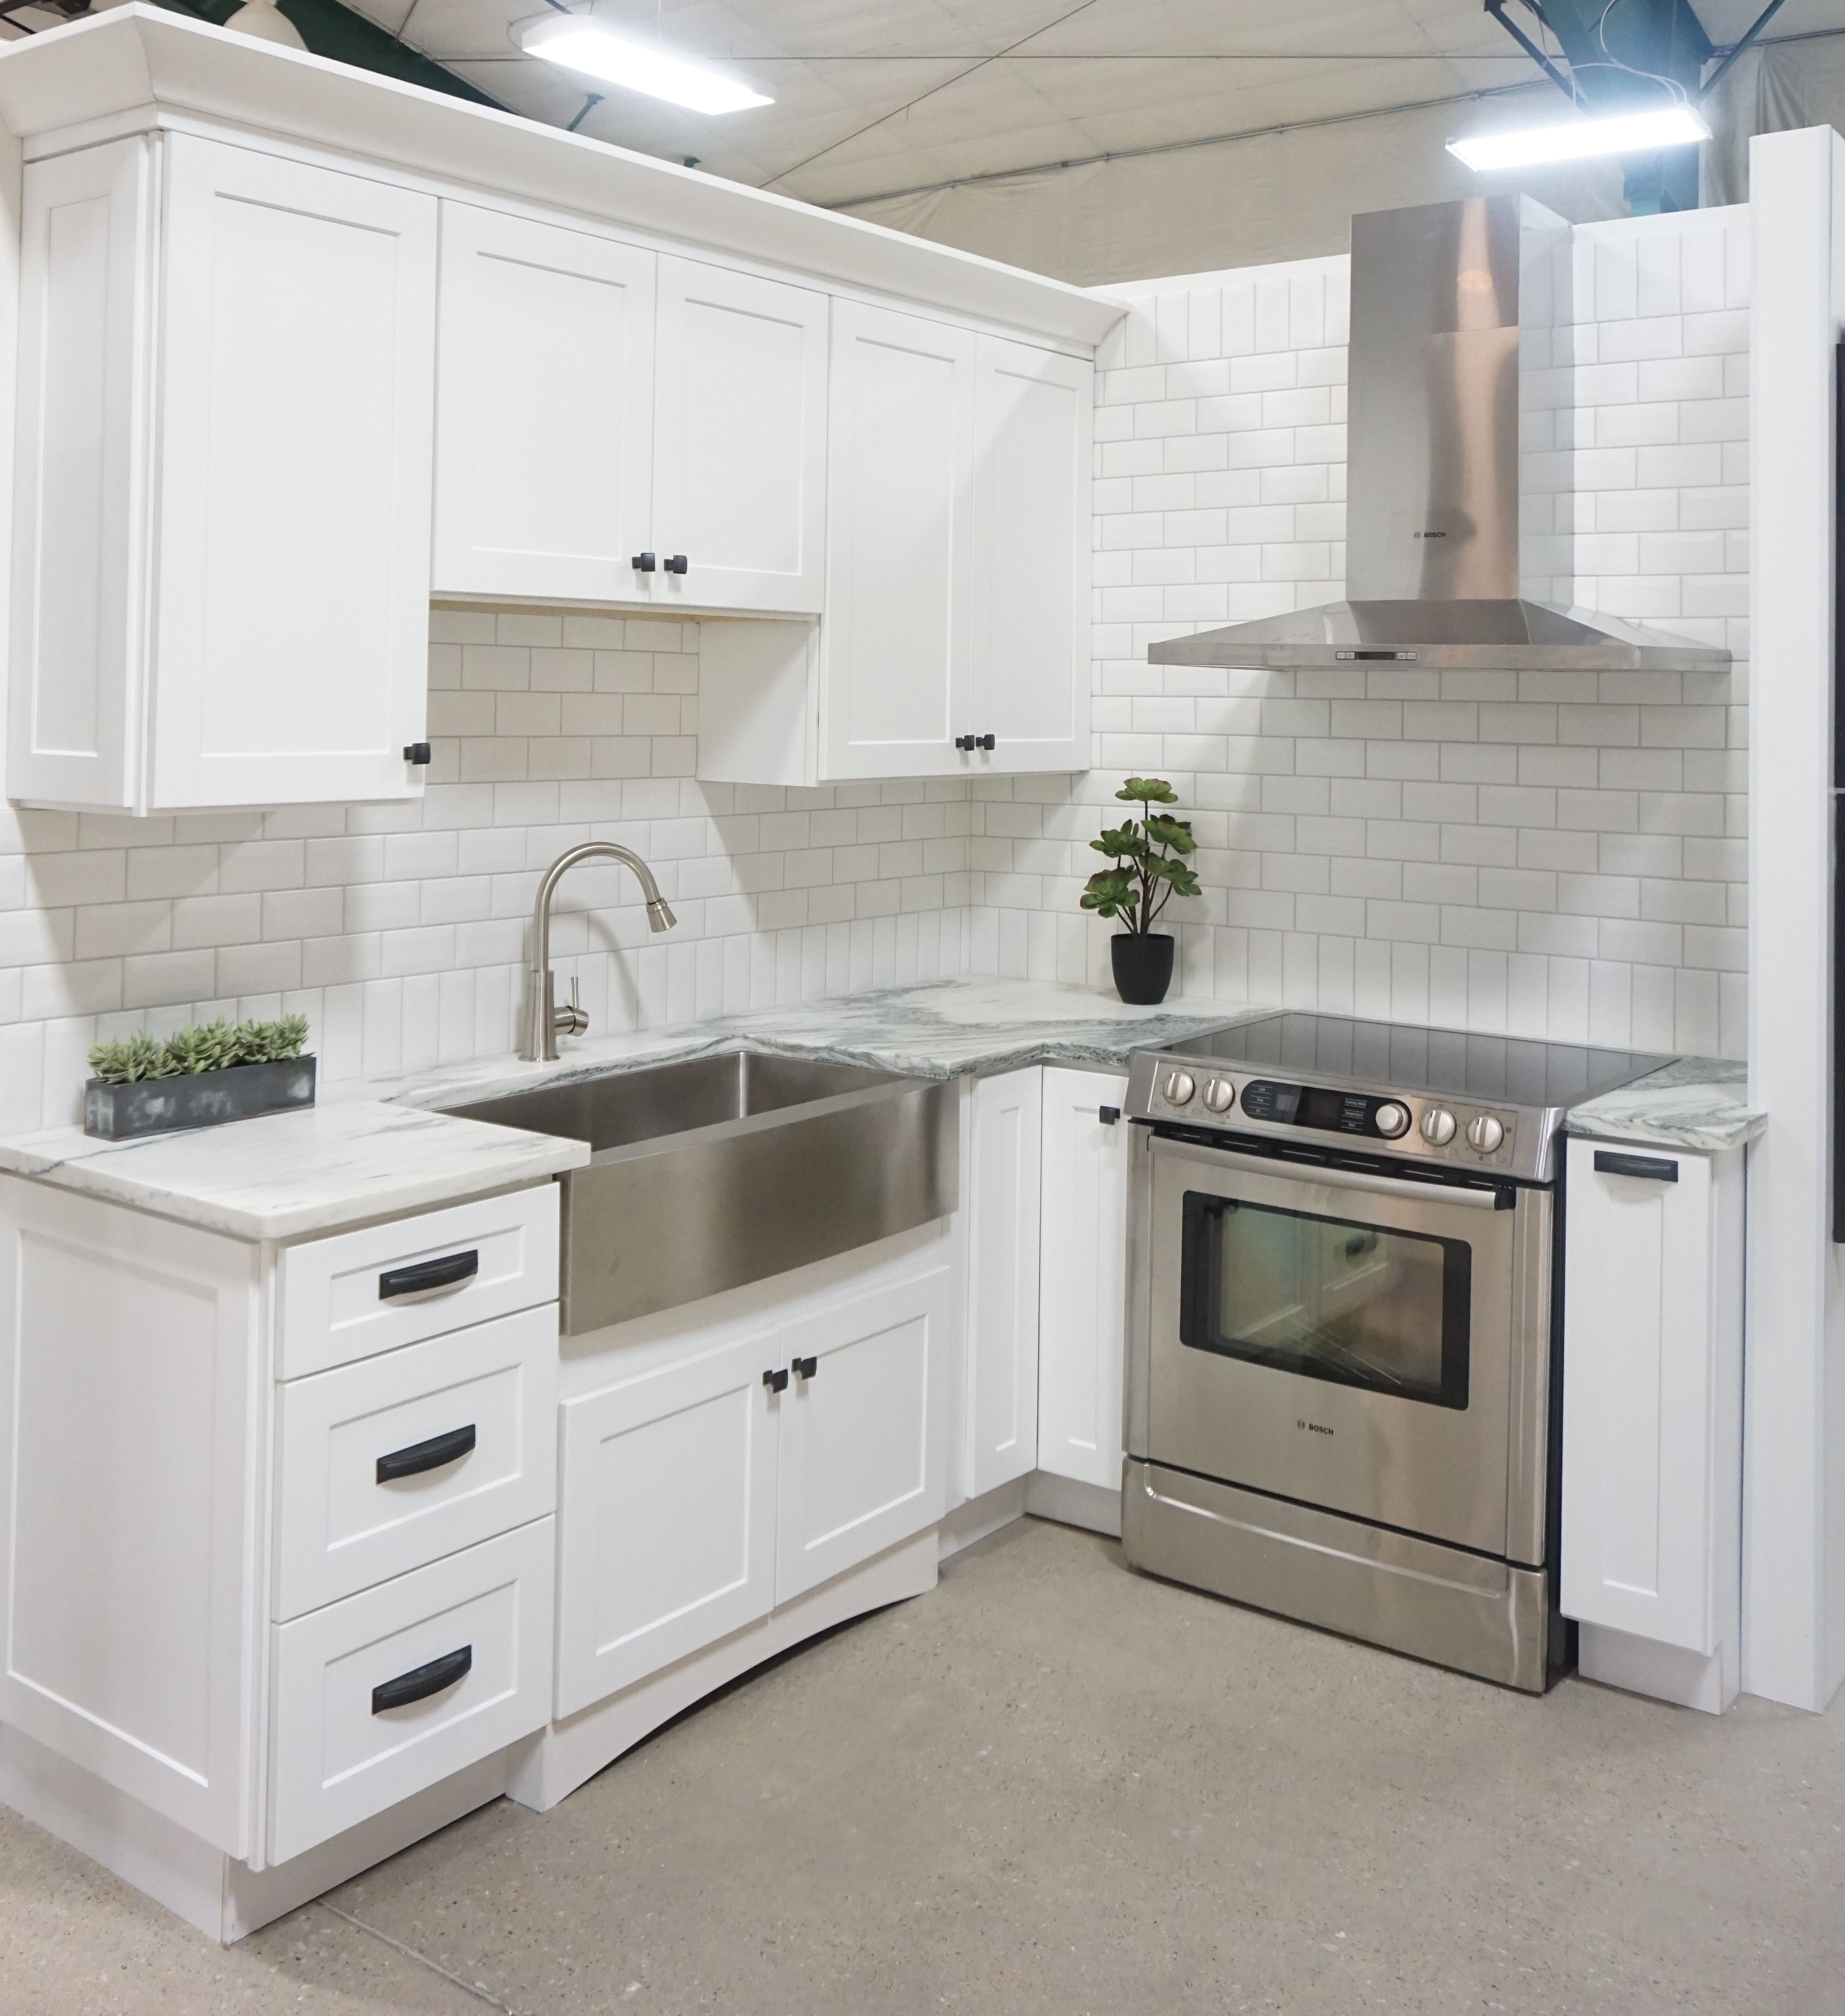 Stainless Steel Cabinets And Countertops White Cabinets Shaker Door Style White Marble